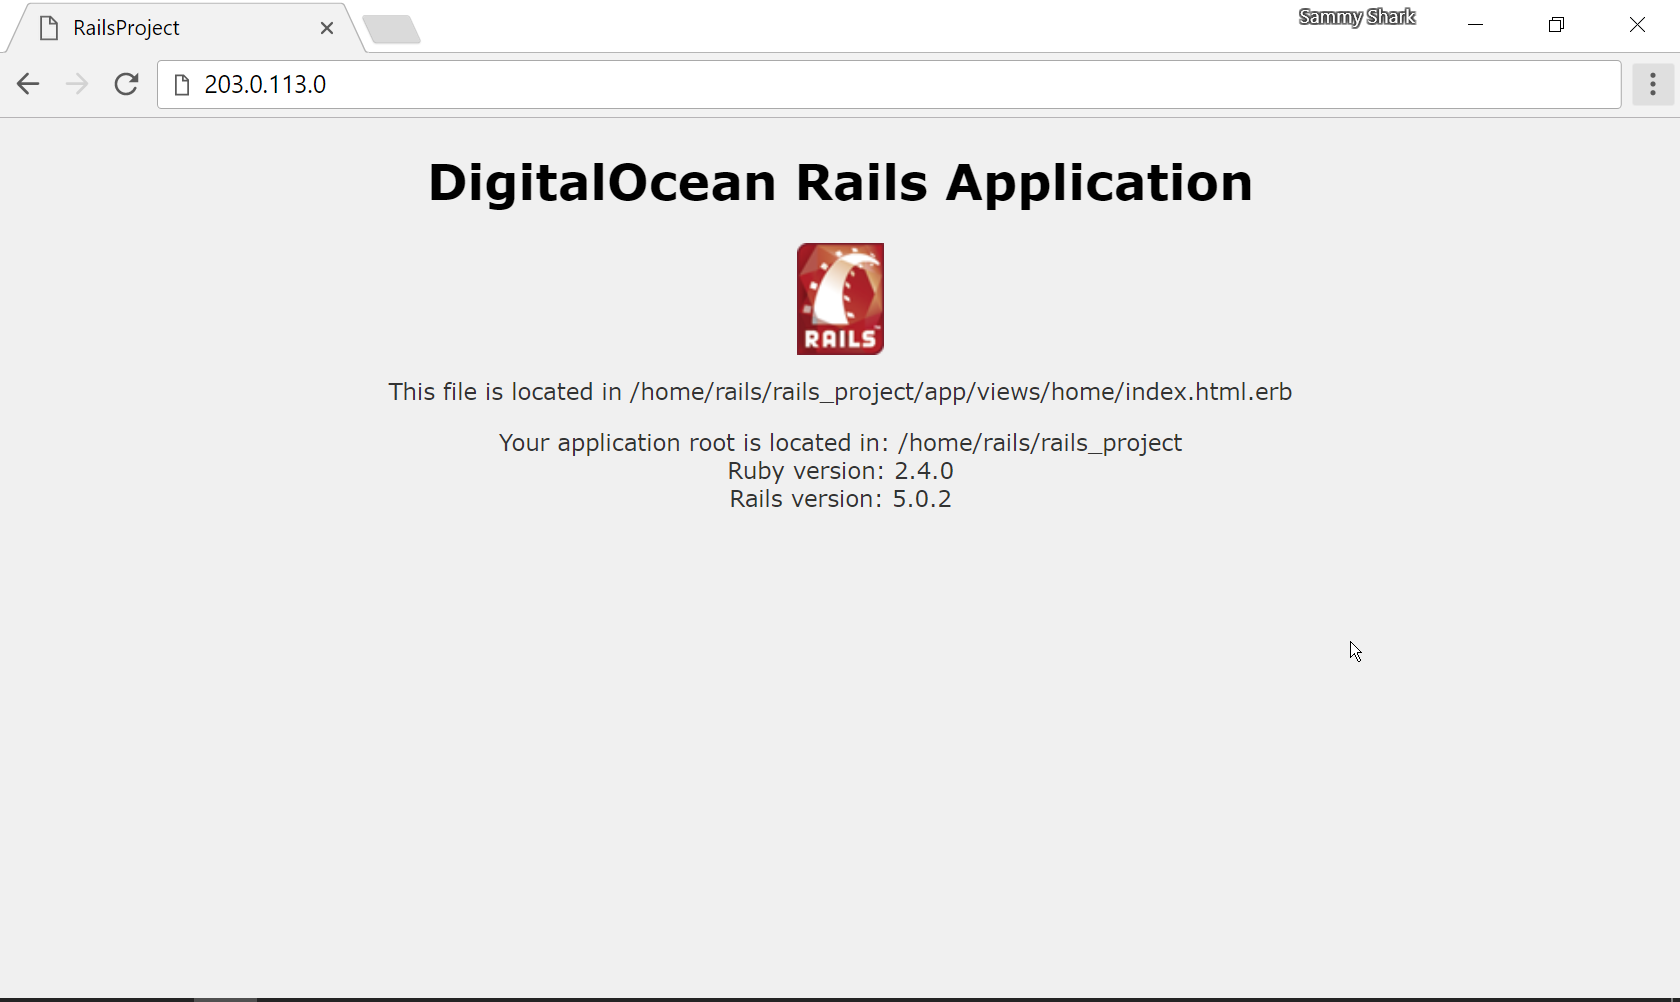 Screenshot showing the DigitalOcean Rails Application heading and version in a web browser